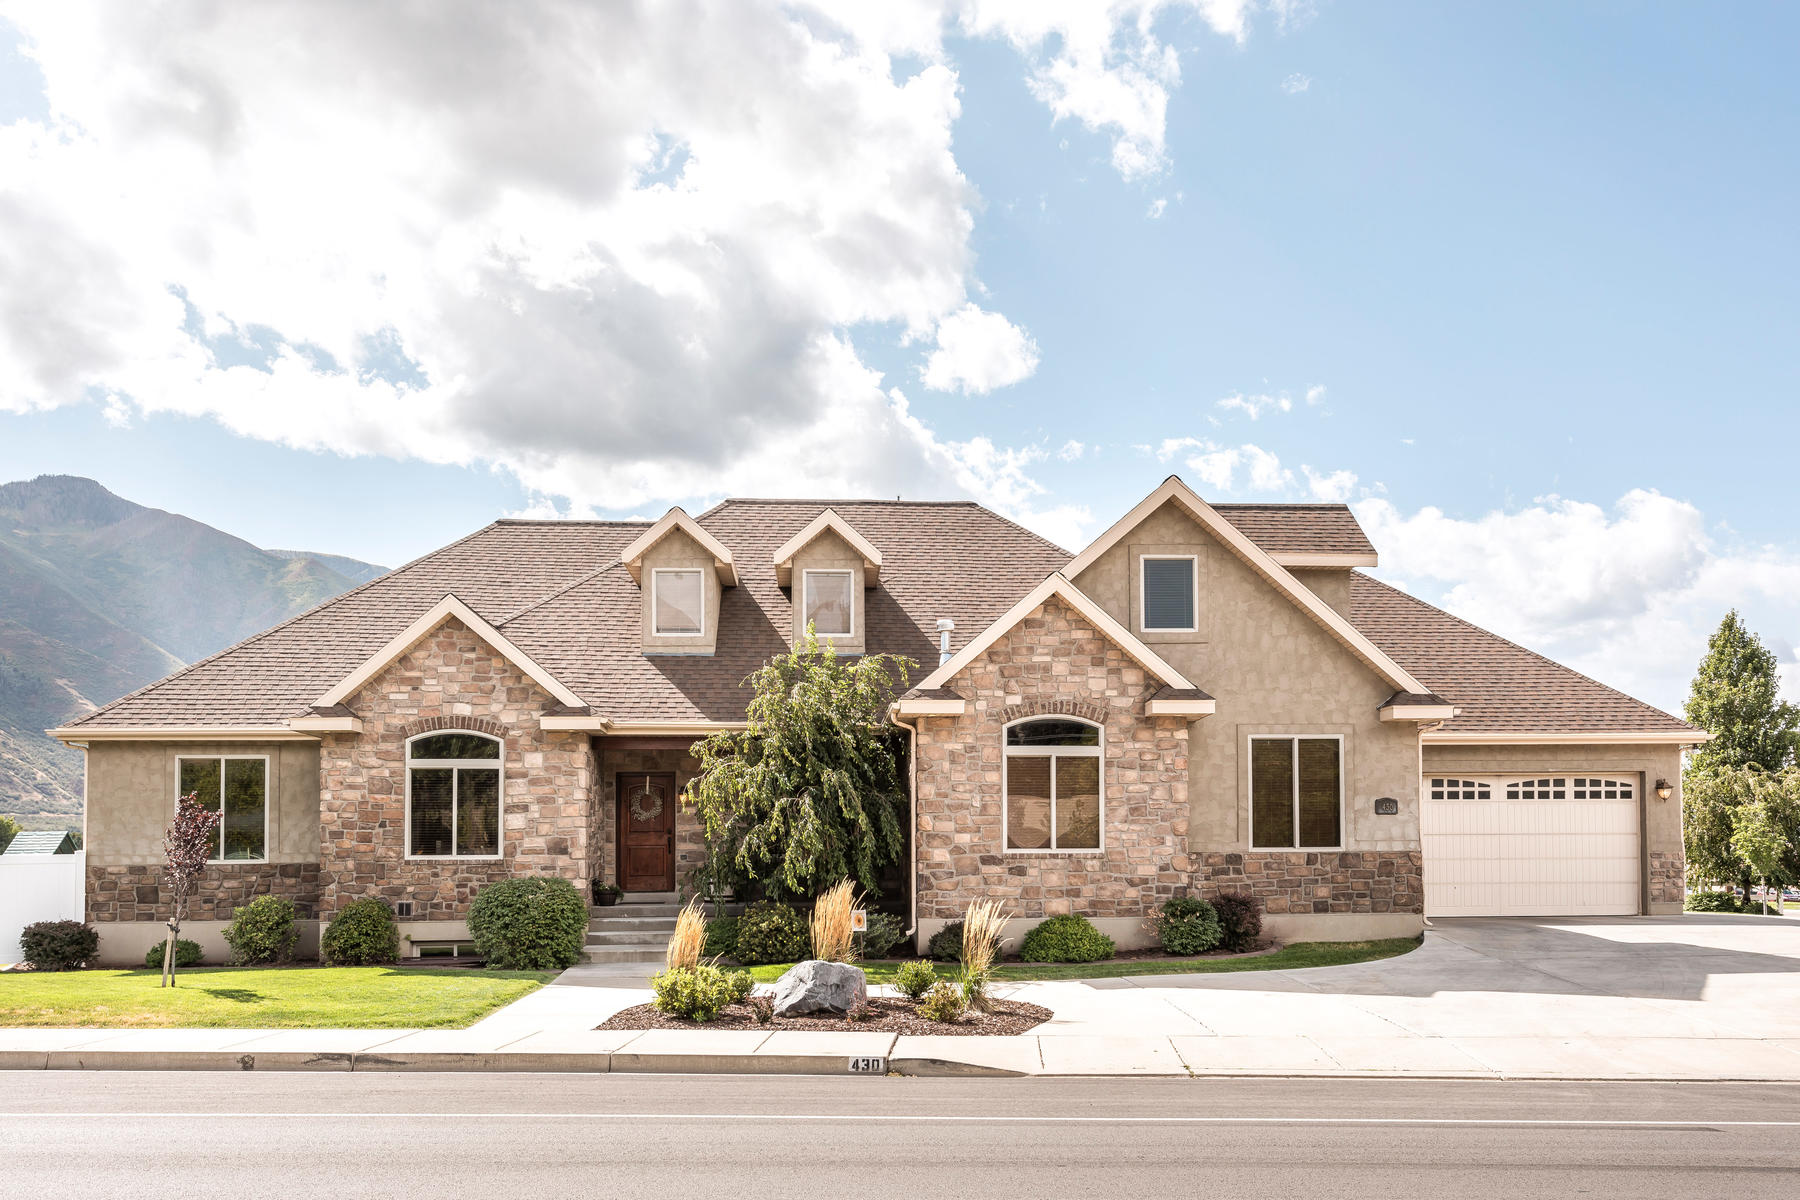 Single Family Homes for Active at Beautiful Six Bedroom Home in Northeast Mapleton 430 East 1200 North Mapleton, Utah 84664 United States